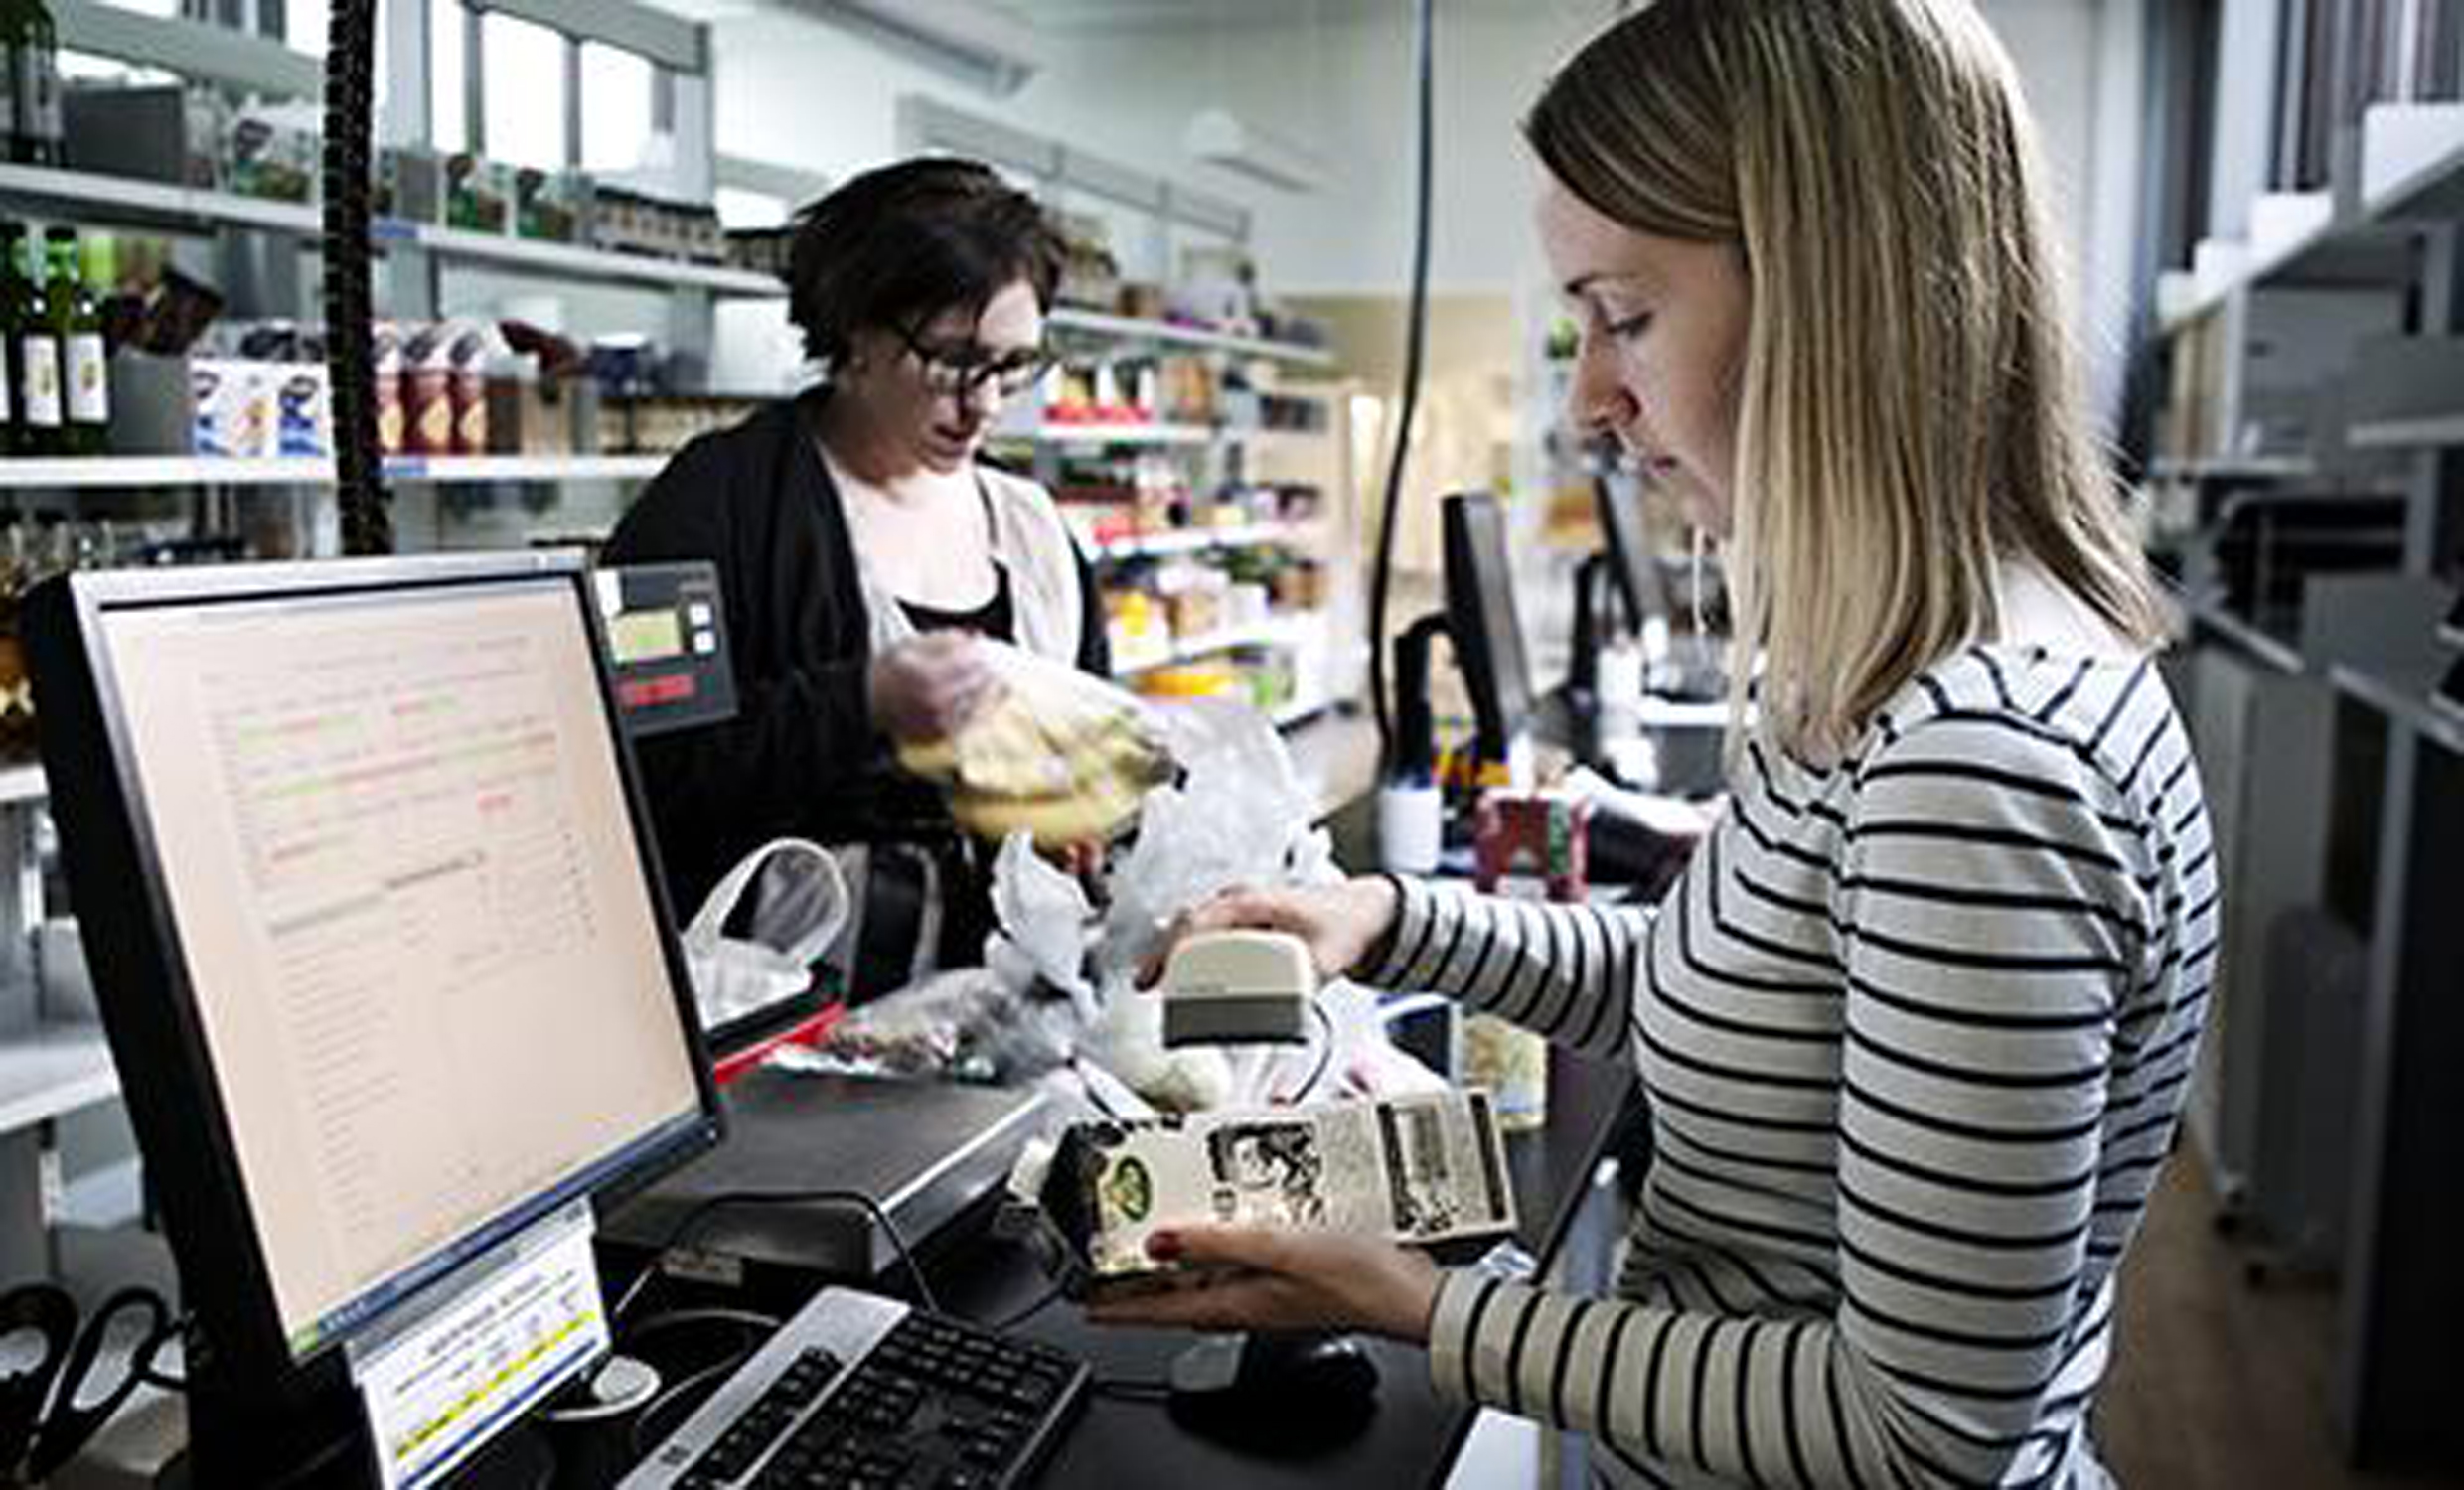 The subjects picking up their food in a scientific supermarket at the University of Copenhagen.